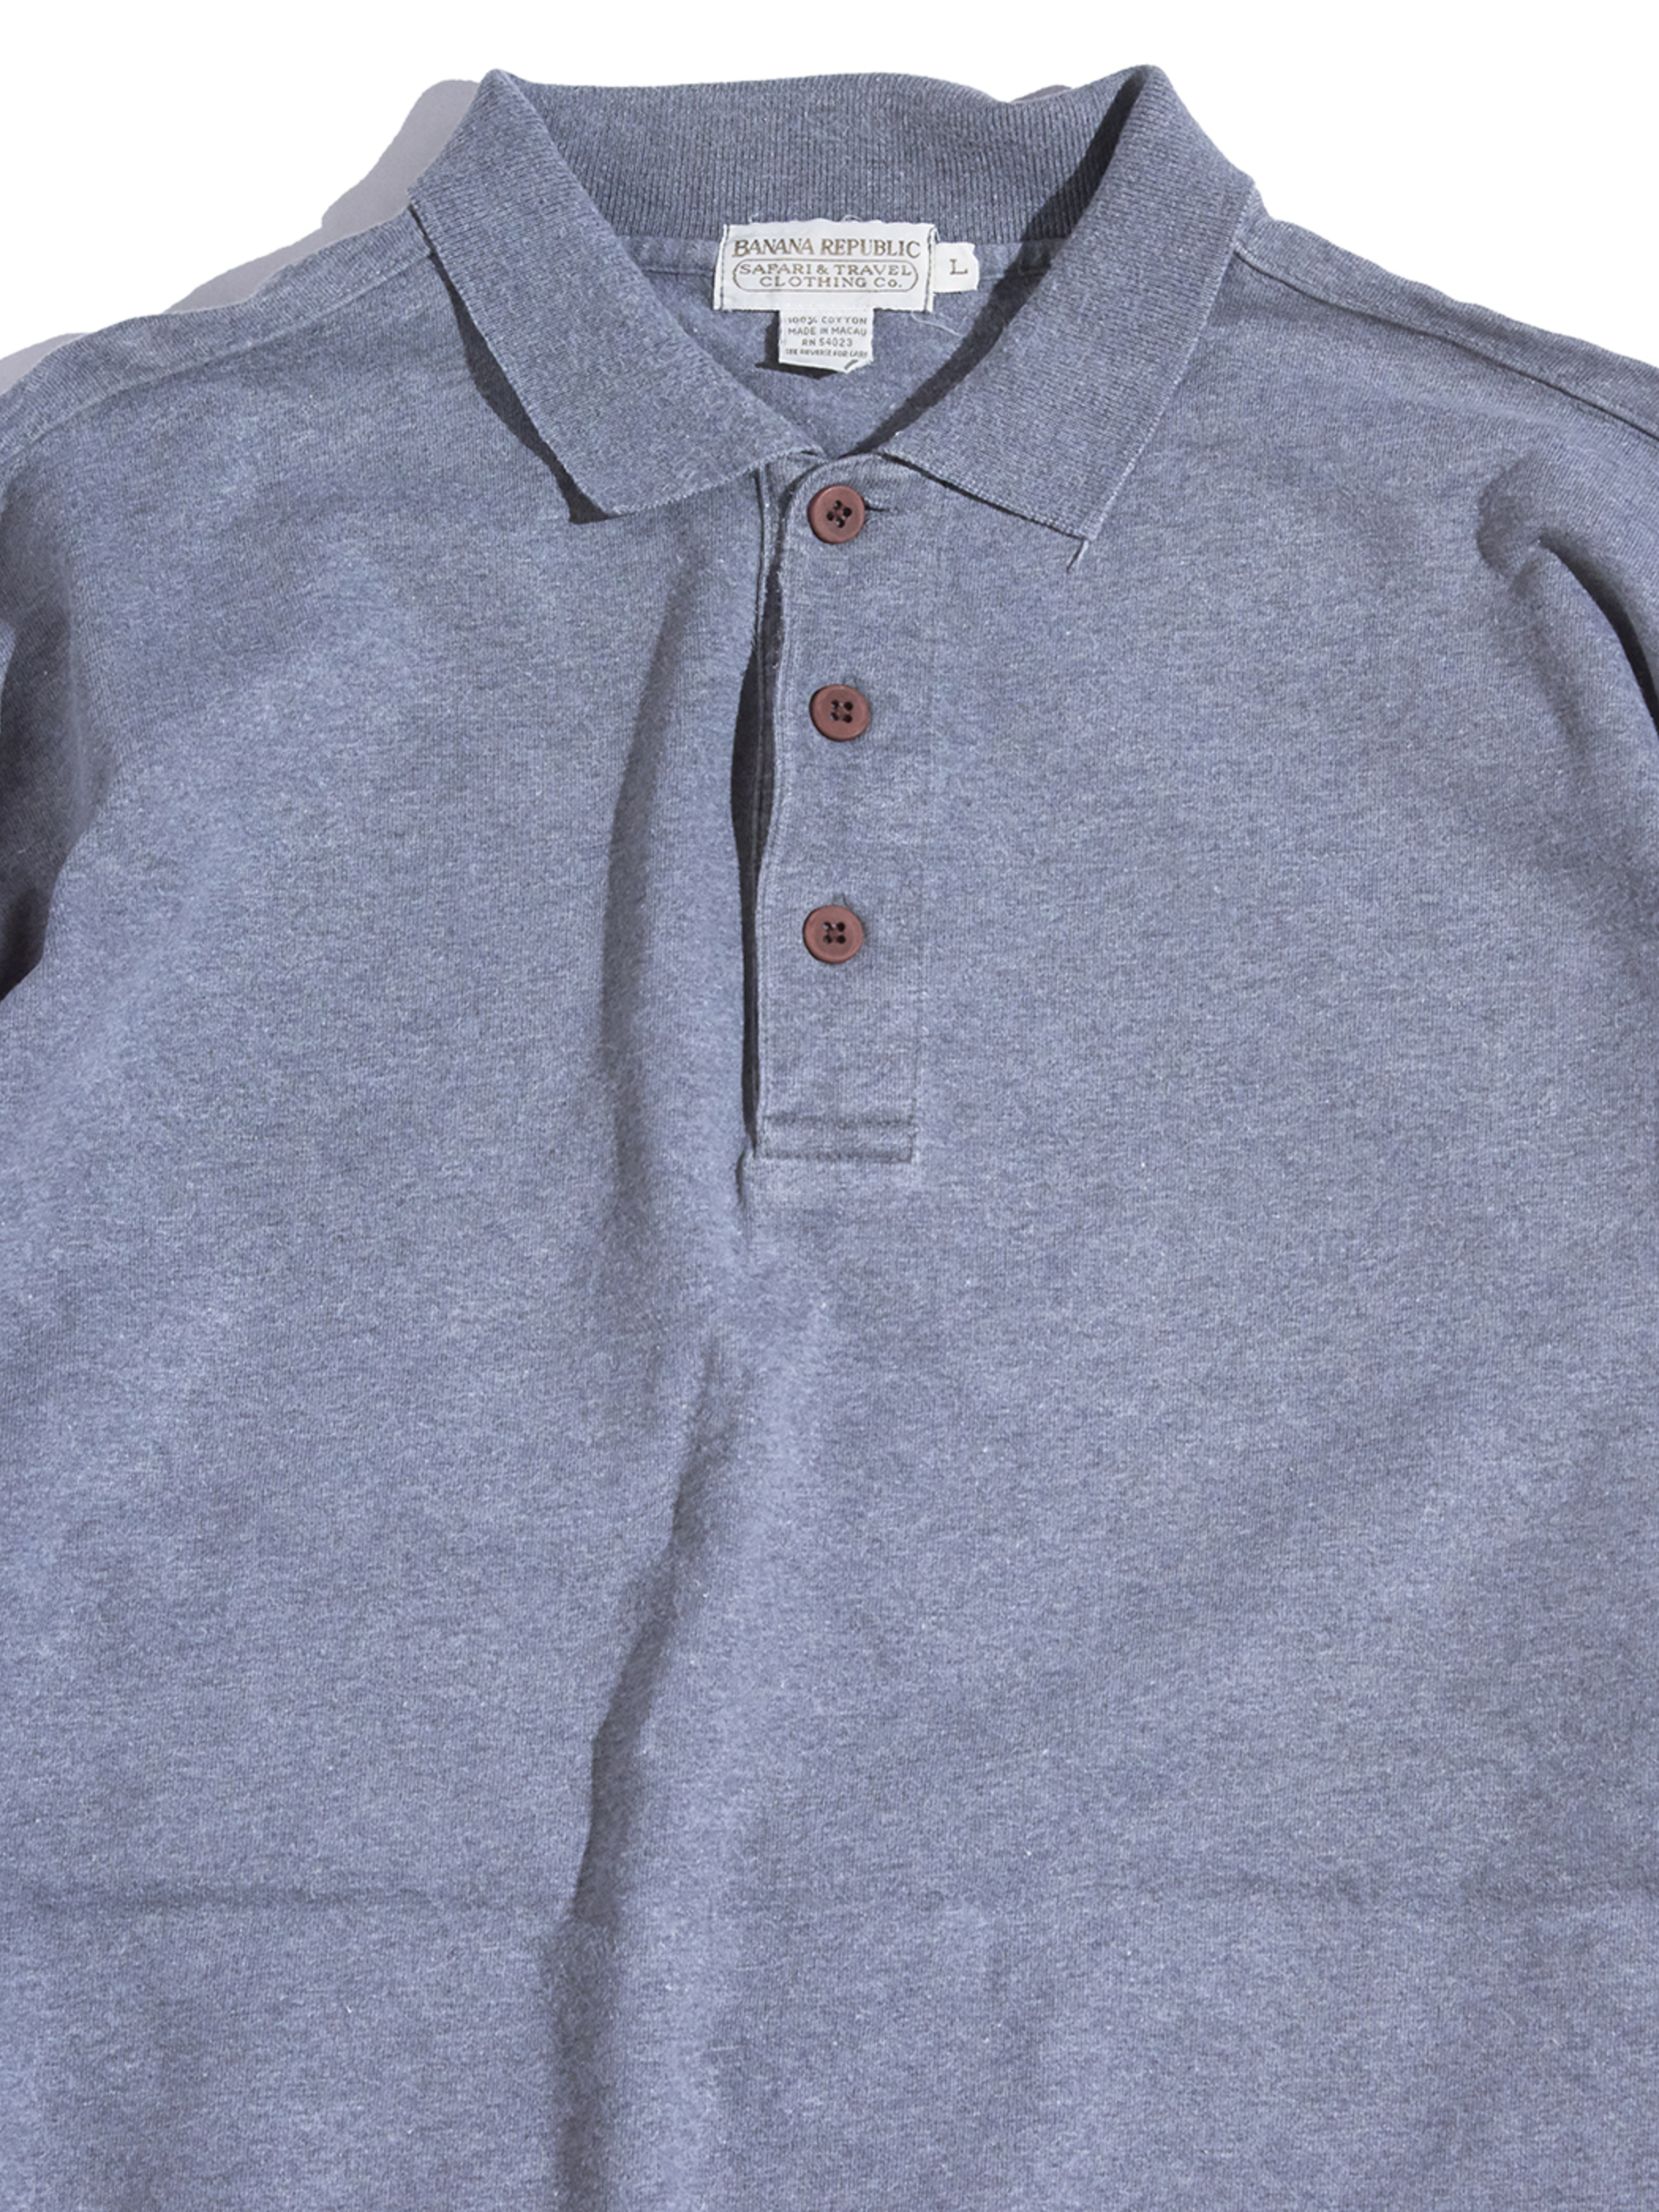 "1980s ""BANANA  REPUBLIC"" cotton polo shirt -GRAY-"